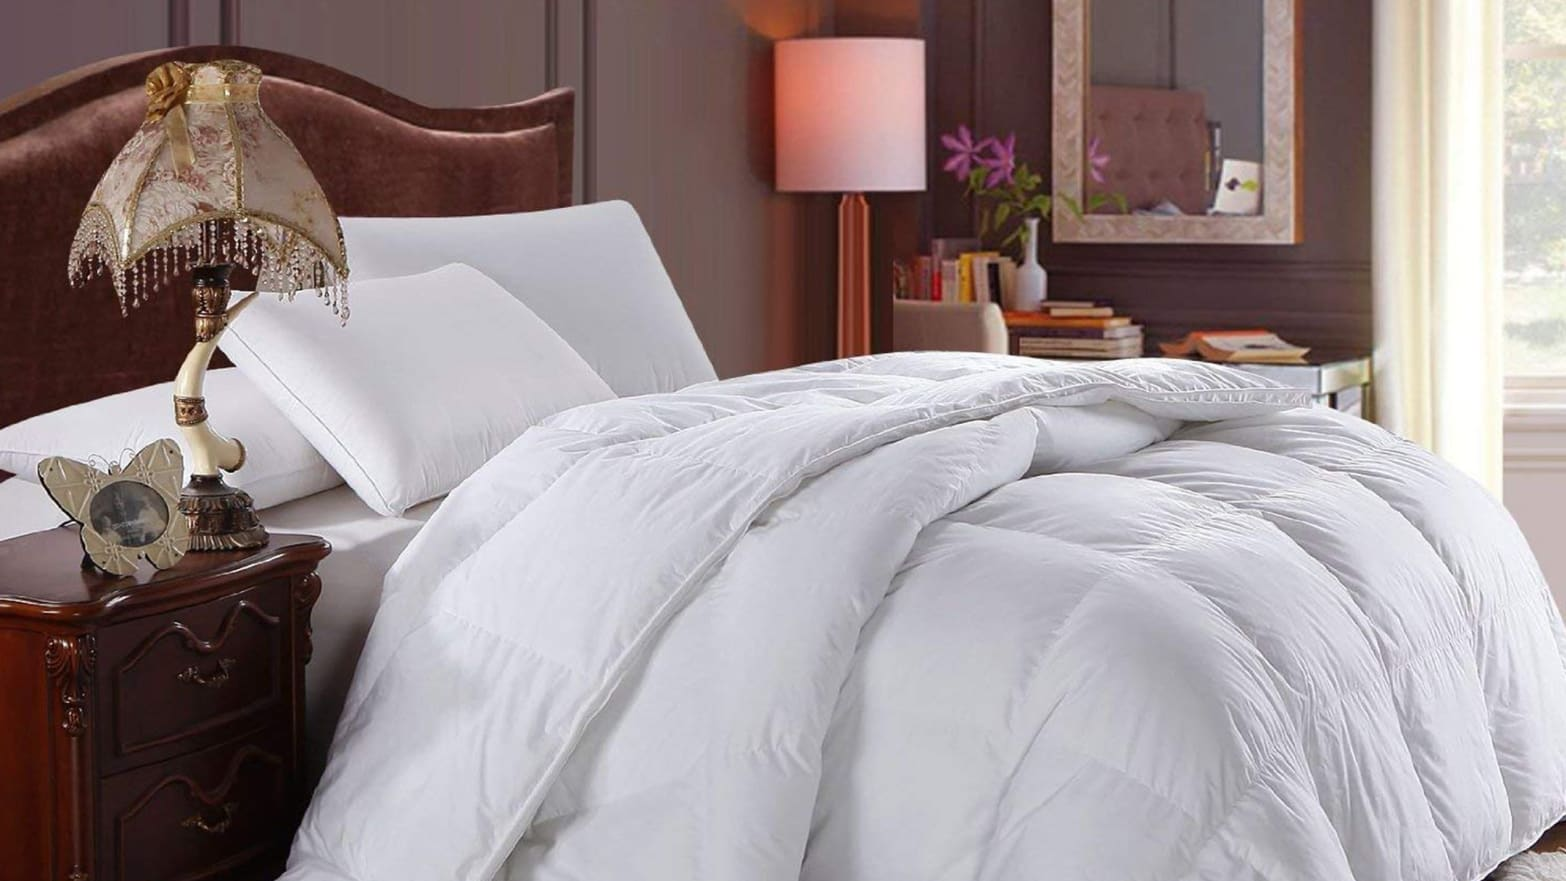 Amazon Cut 26% Off a Top-Rated Down Comforter Today Only